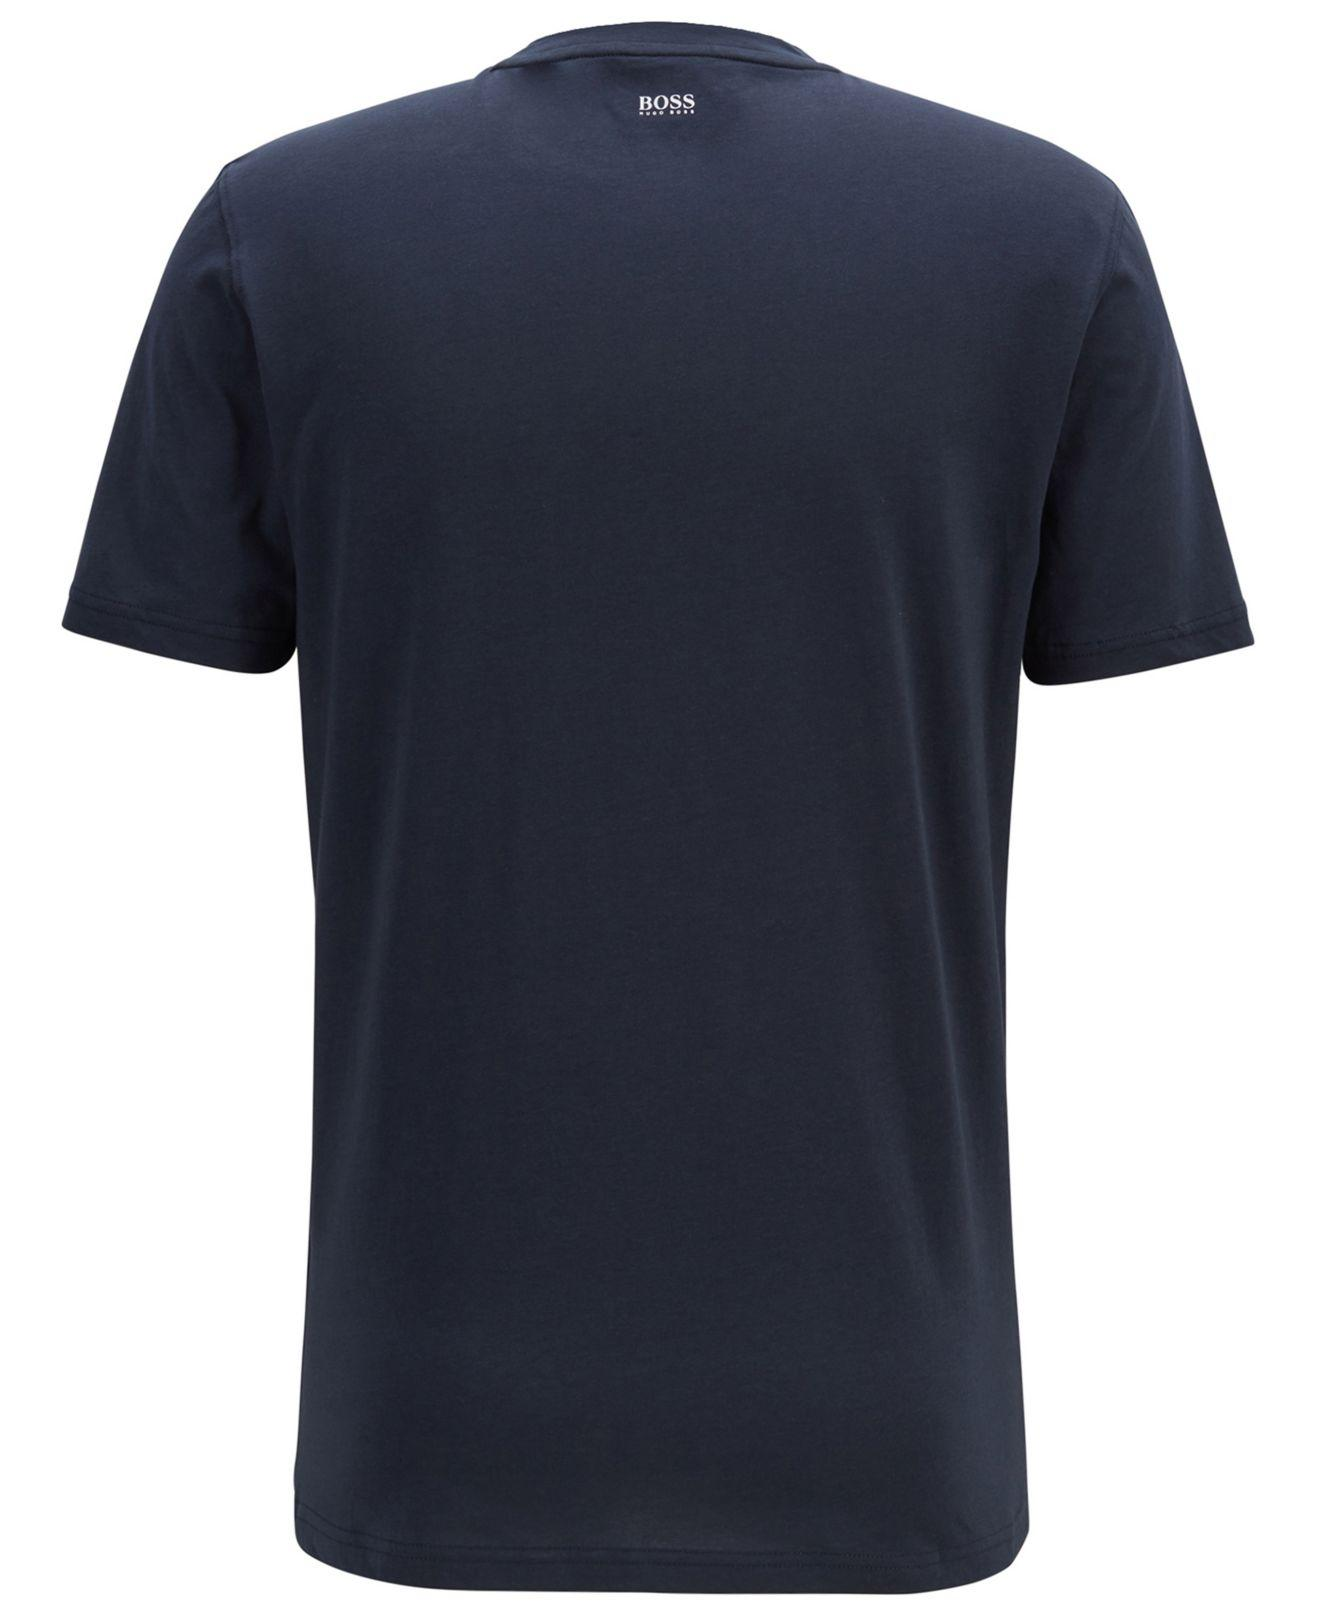 28ab6aae1 Lyst - BOSS Relaxed-fit T-shirt With Cracked-effect Graphic Print in Blue  for Men